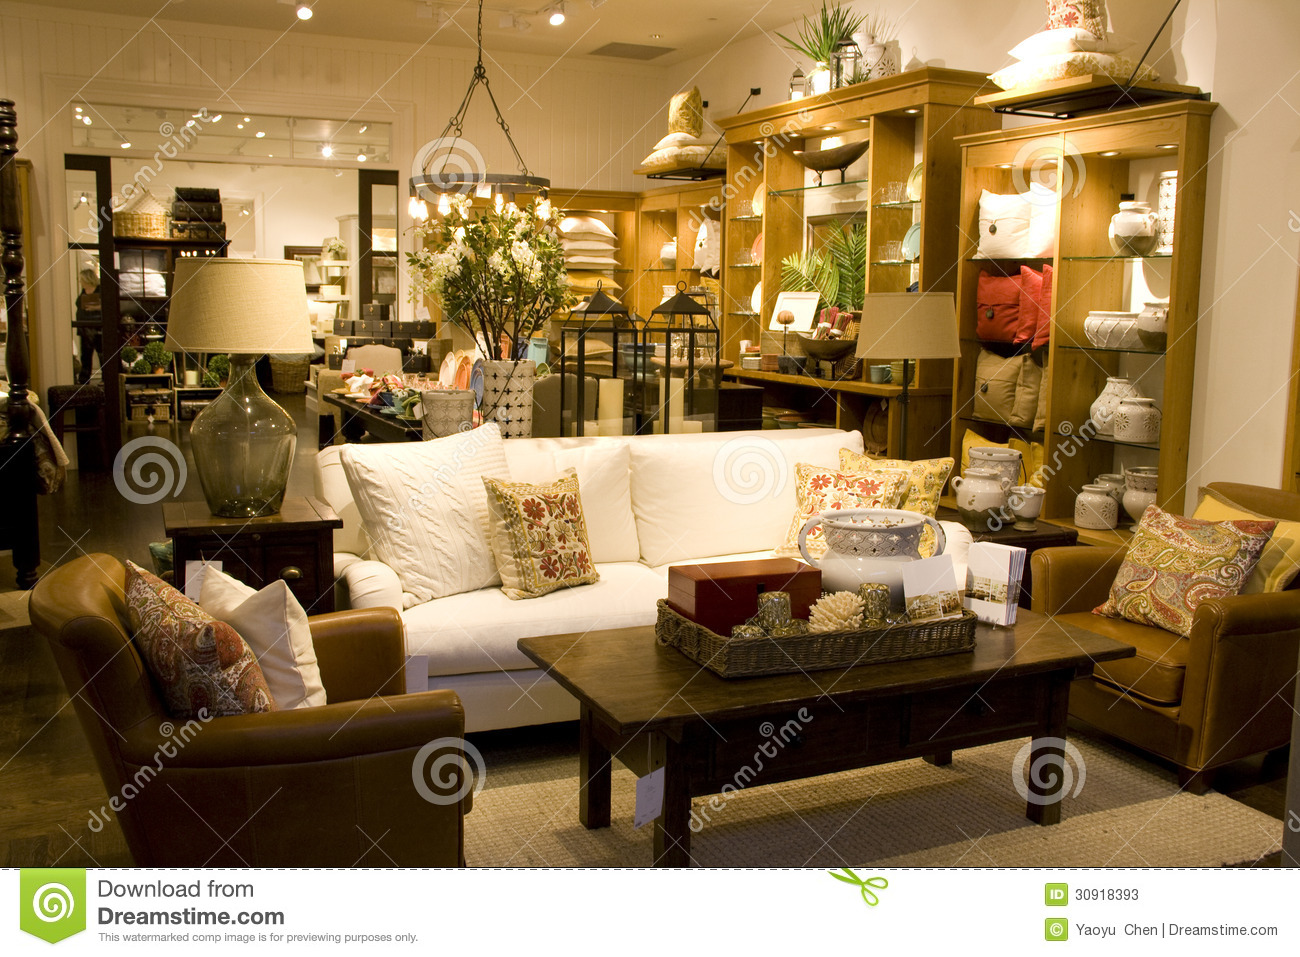 Furniture and home decor store stock image image 30918393 for Home decor and furniture